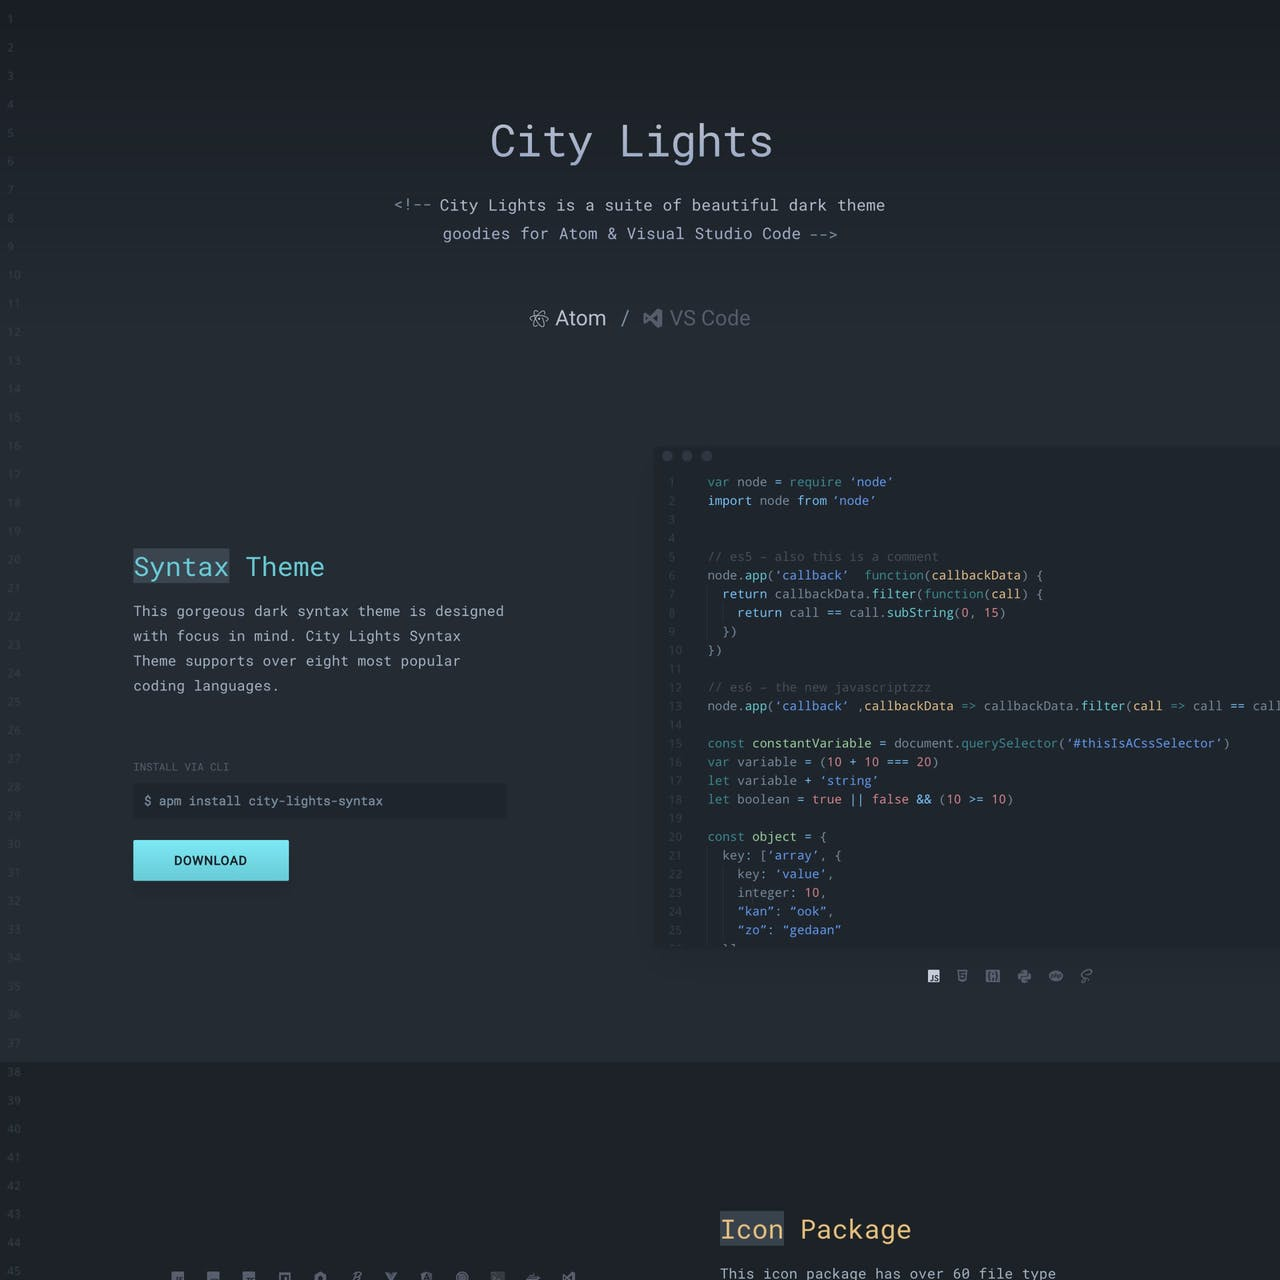 City Lights Website Screenshot